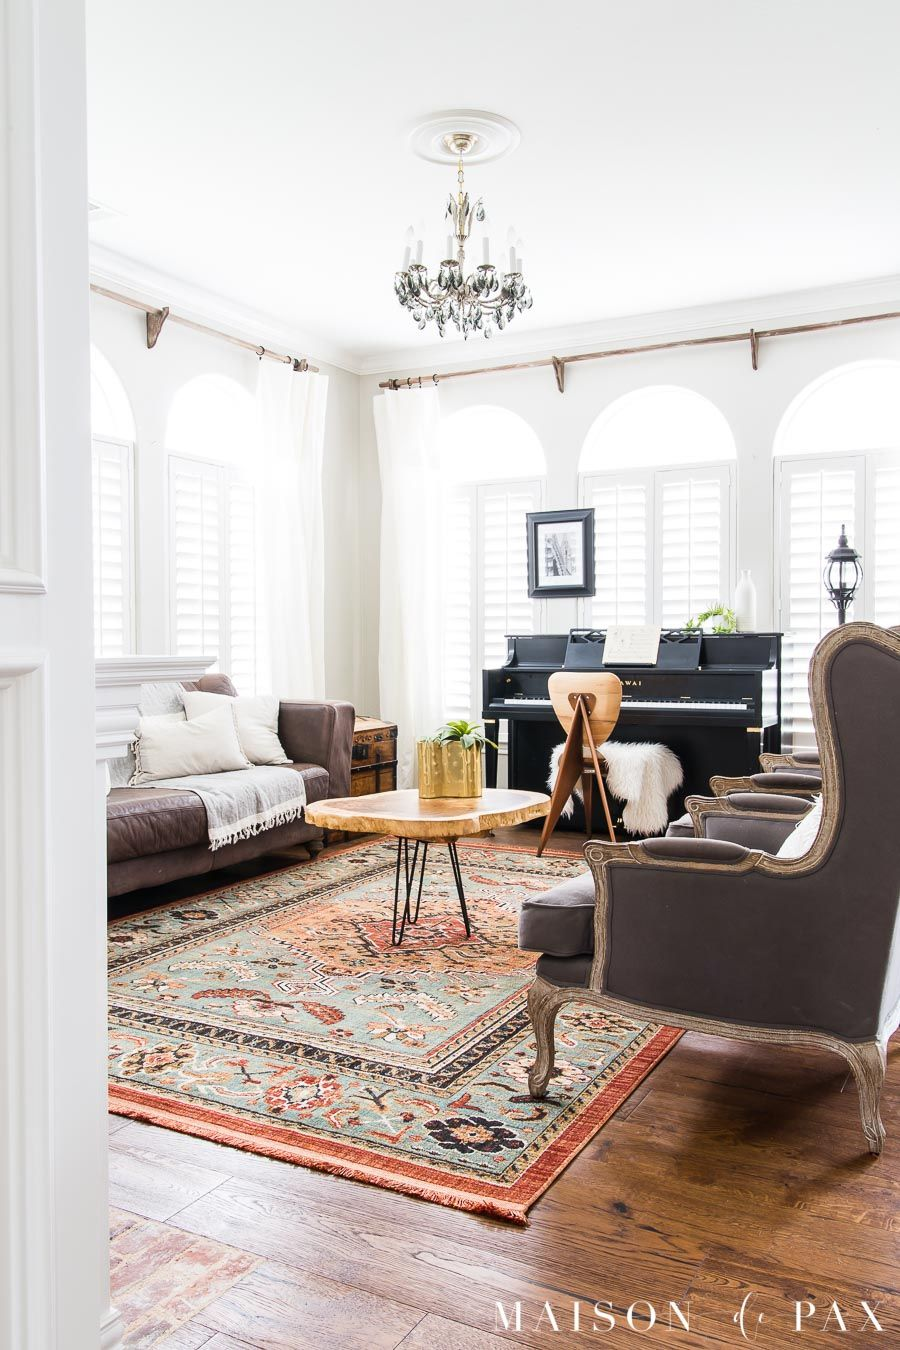 Redecorate My Living Room: Eclectic Living Room With Colorful, Neutral, And Vintage